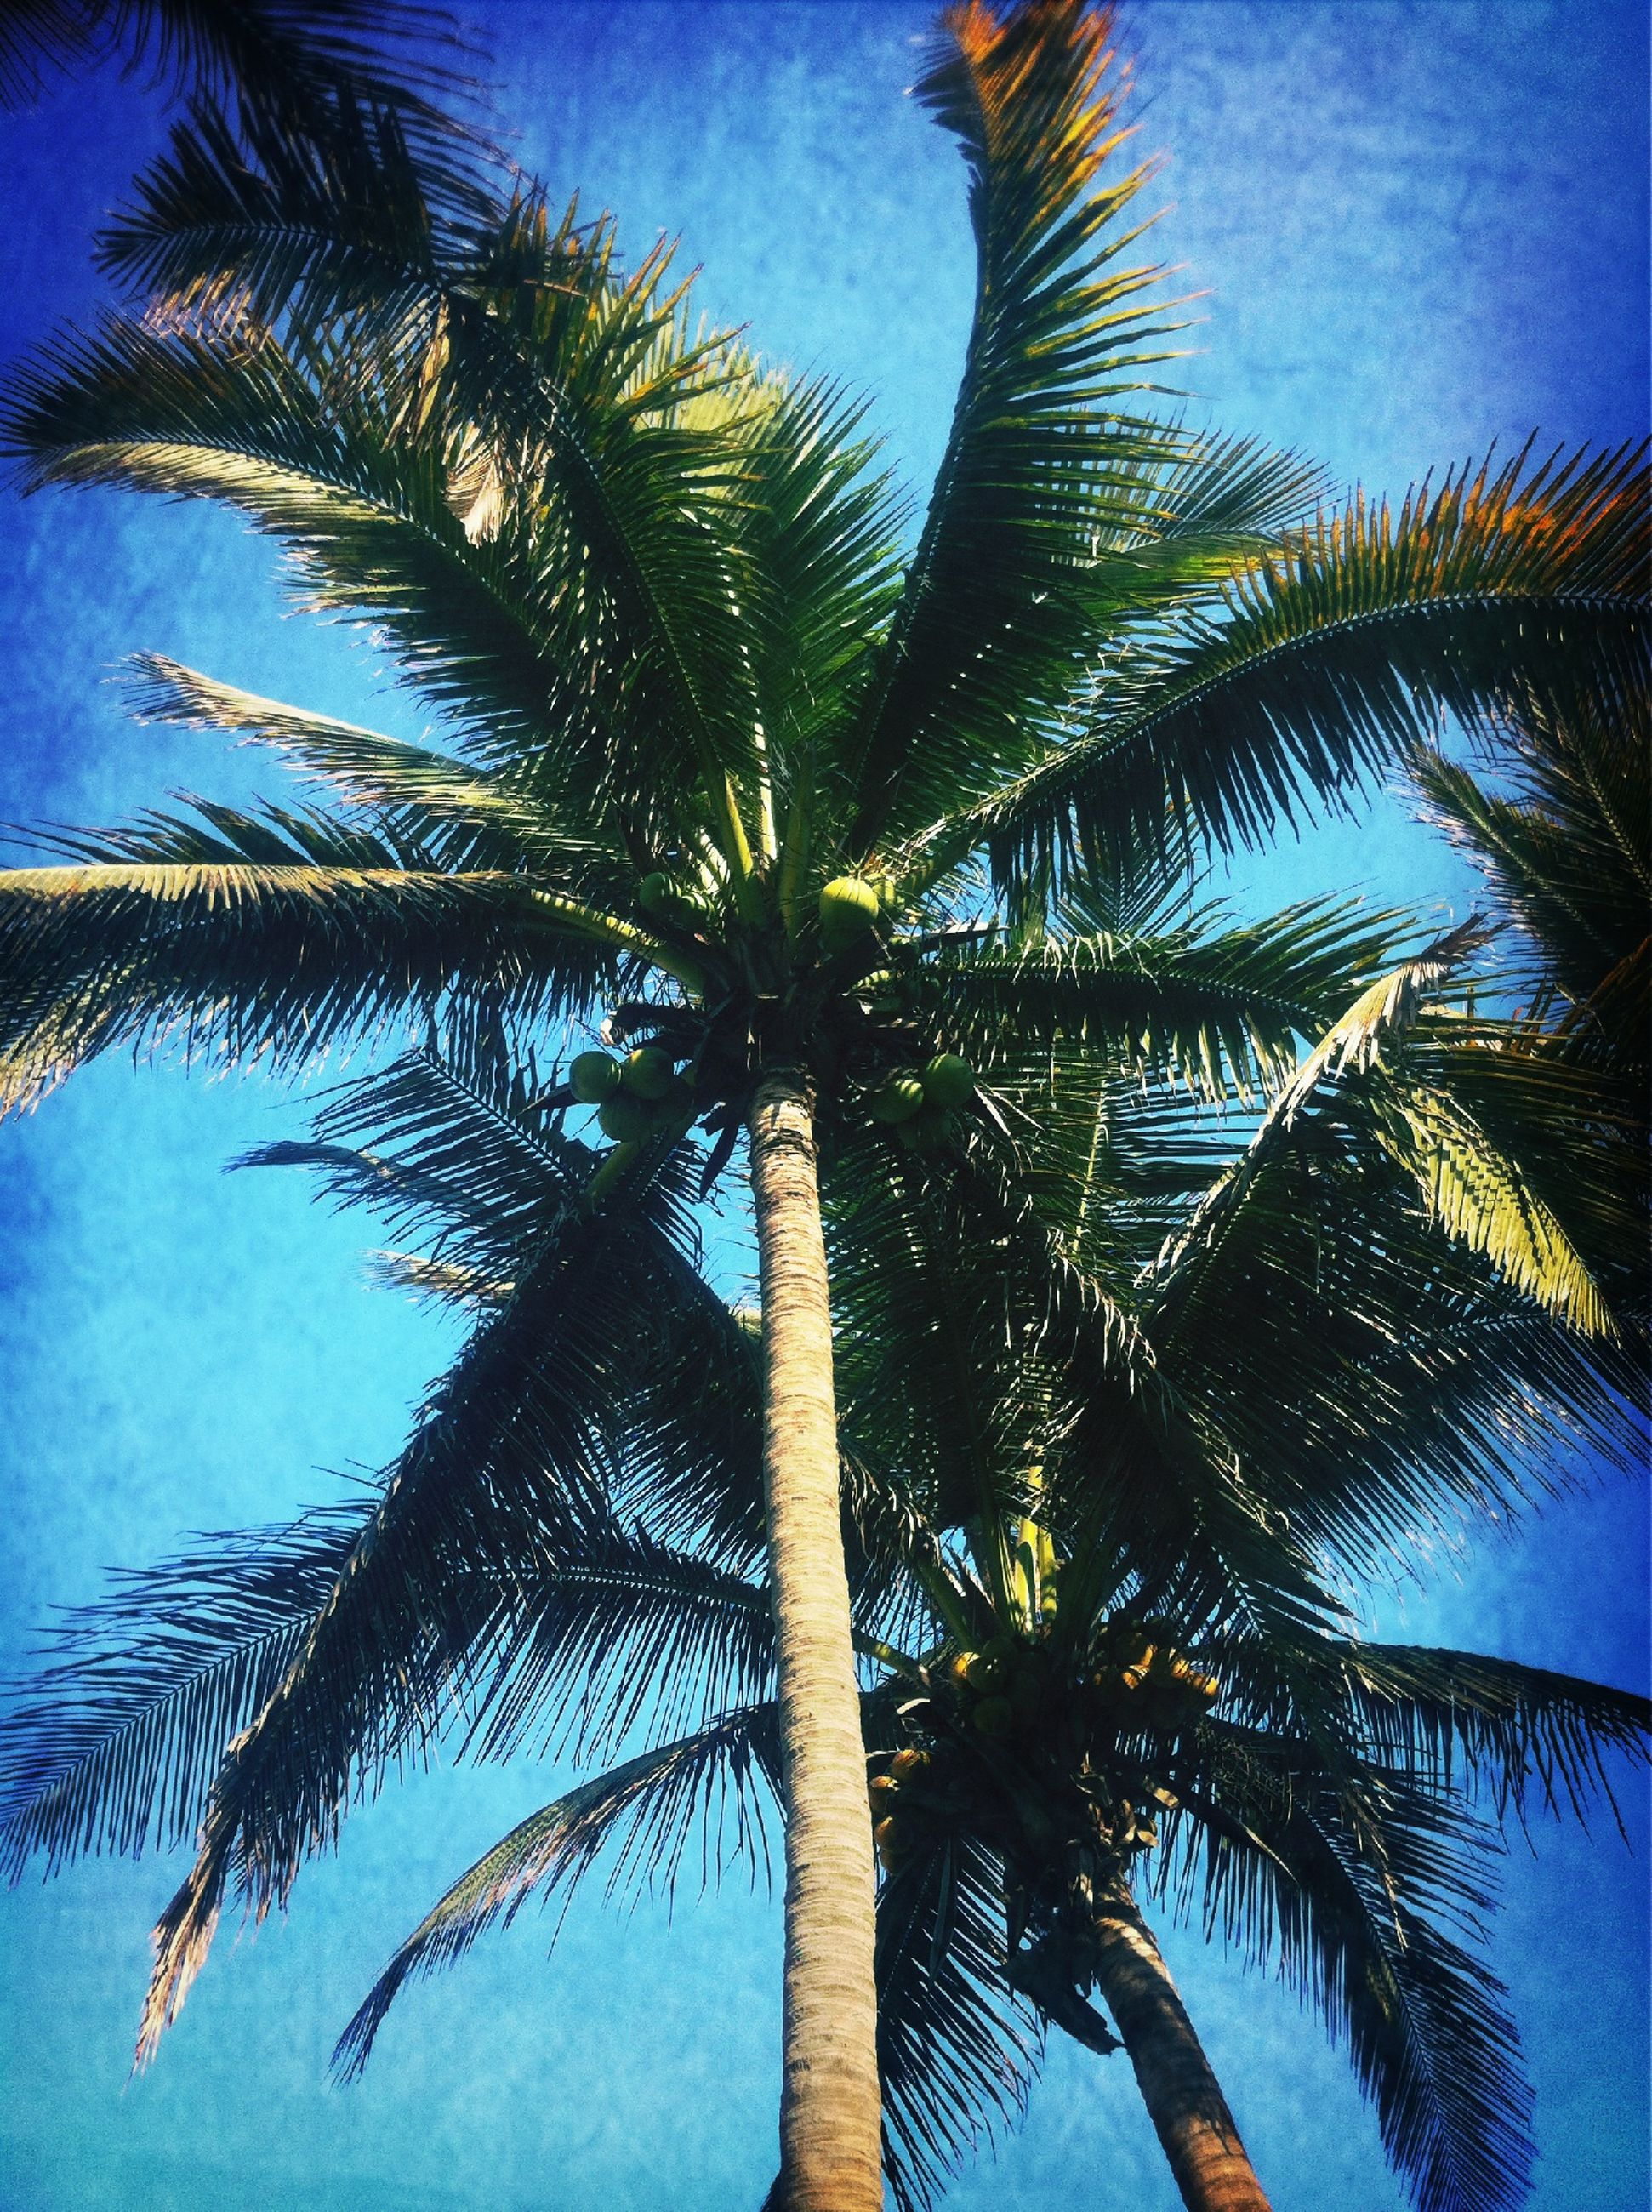 palm tree, low angle view, tree, blue, palm leaf, sky, growth, tranquility, nature, tree trunk, beauty in nature, tropical tree, scenics, coconut palm tree, tranquil scene, palm frond, branch, leaf, tropical climate, silhouette